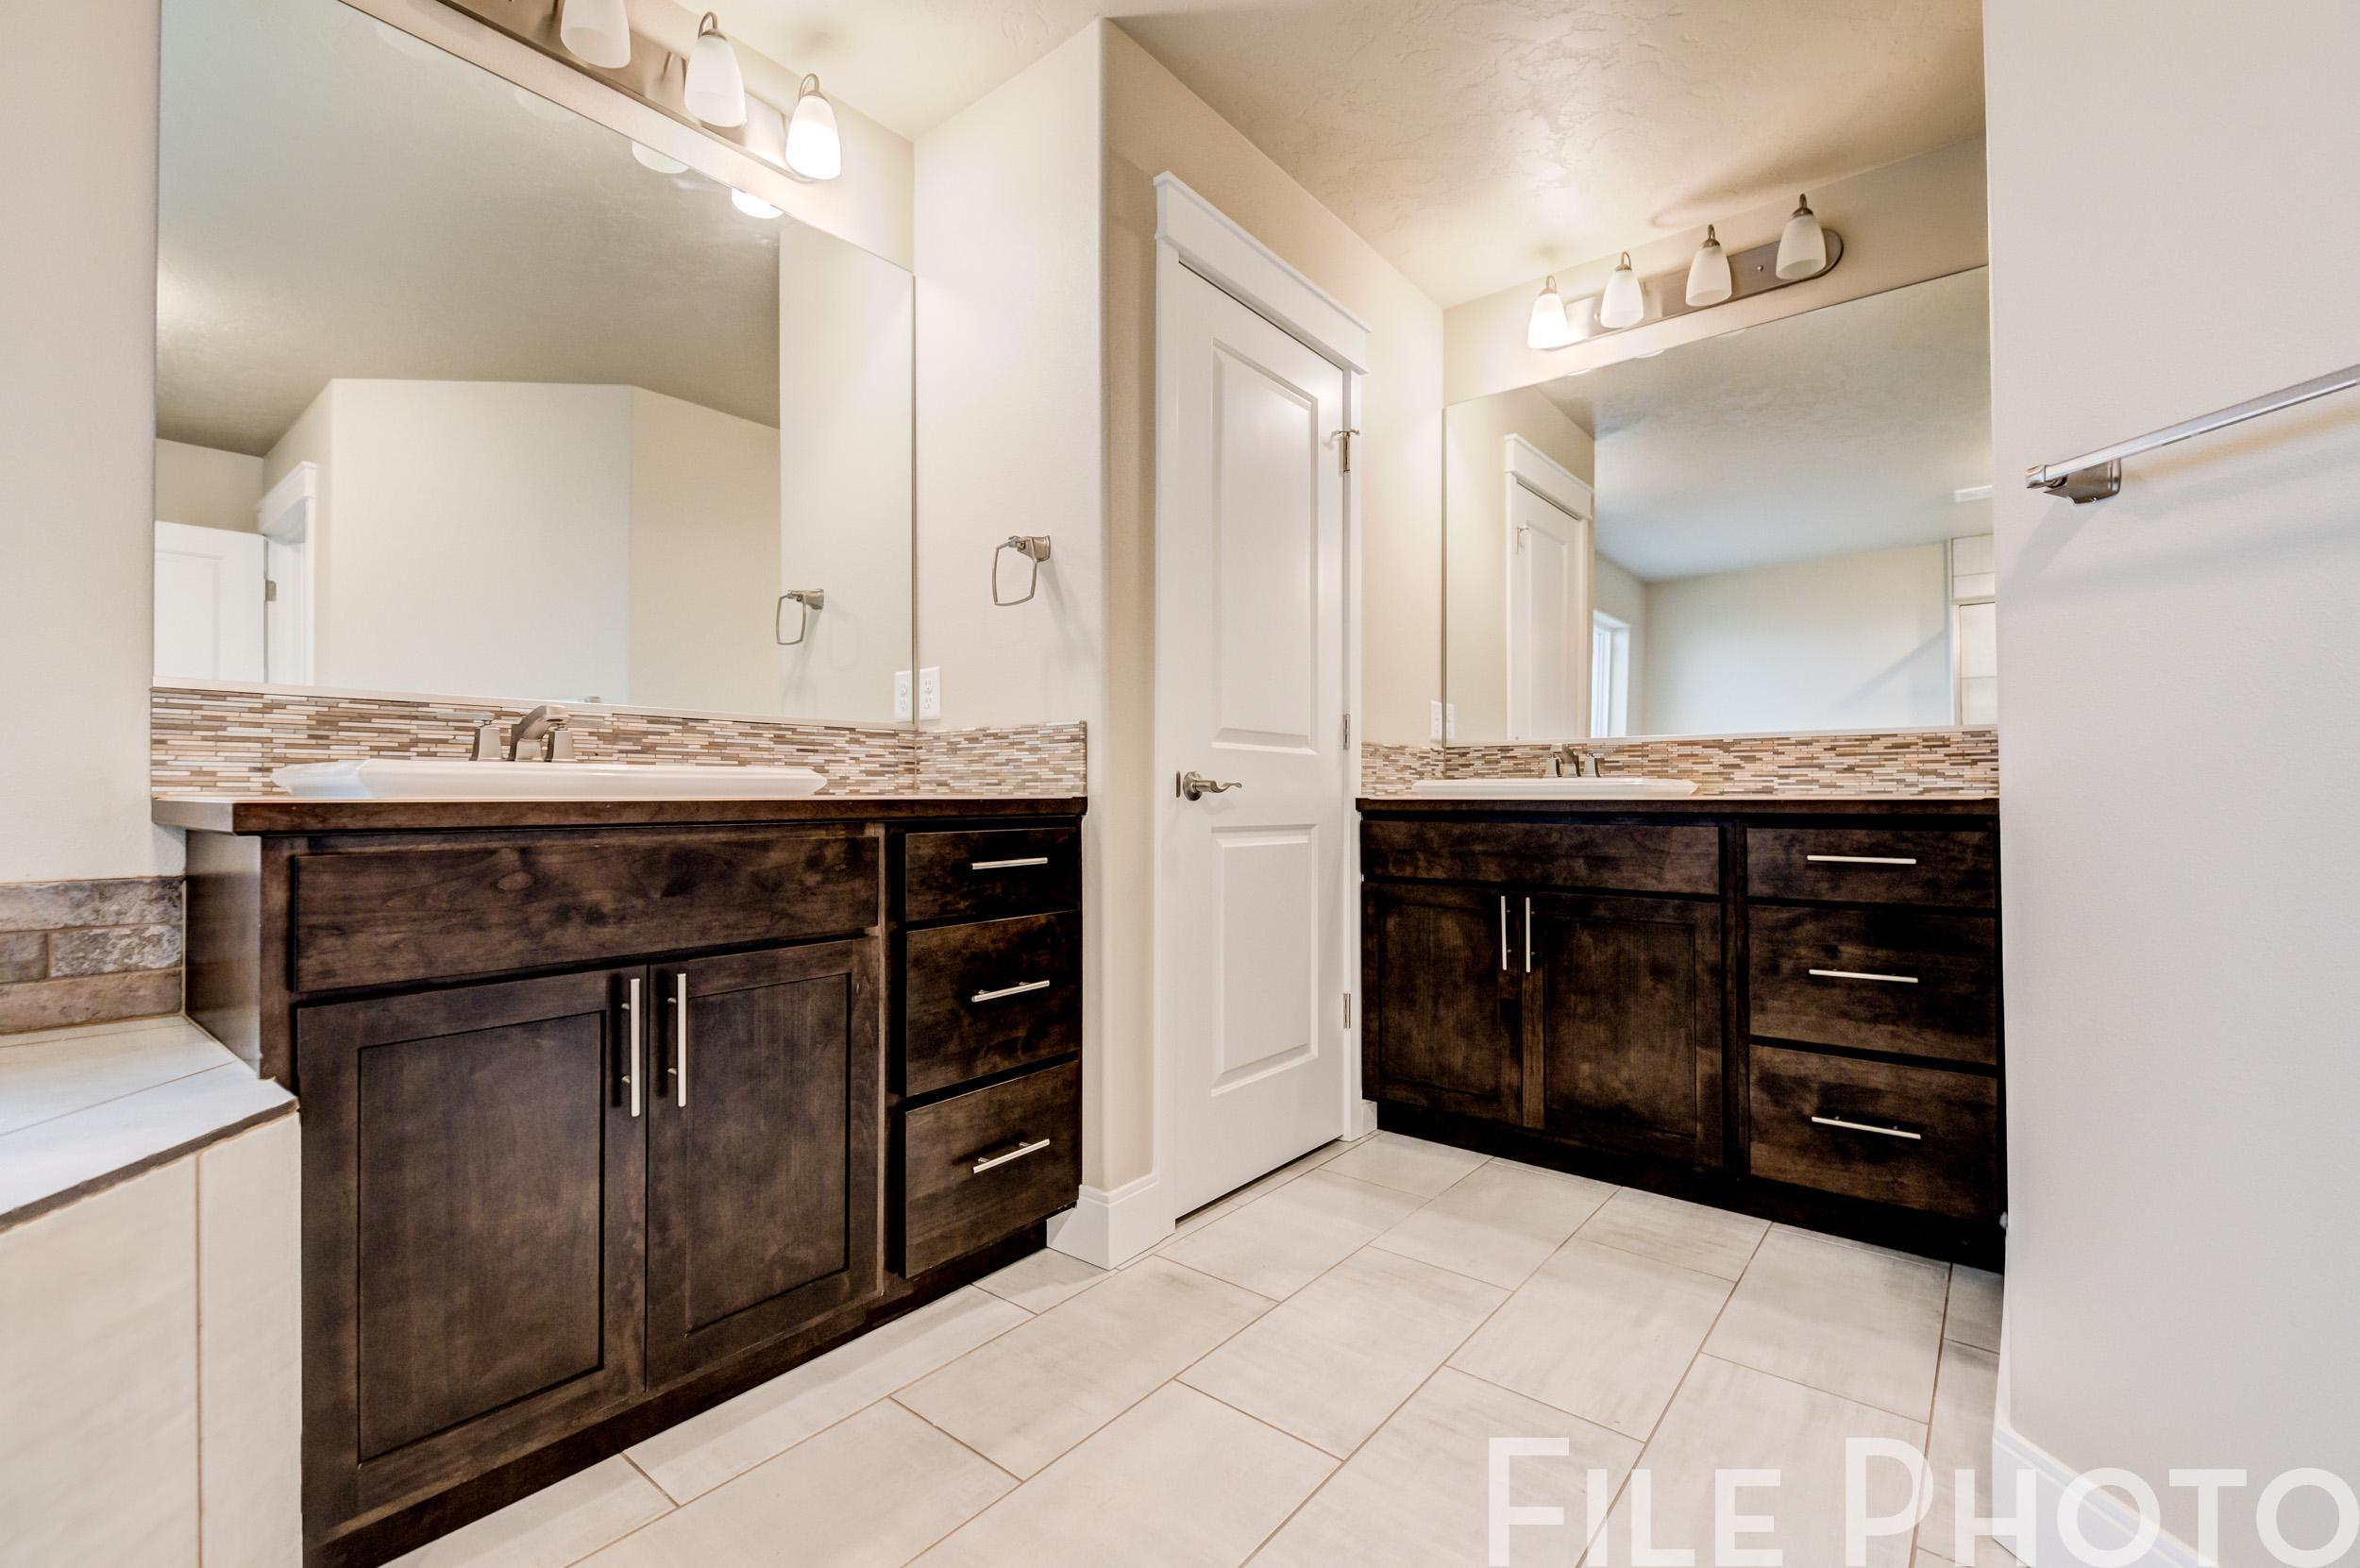 Bathroom featured in The Olympia By Viking Homes in Spokane-Couer d Alene, ID